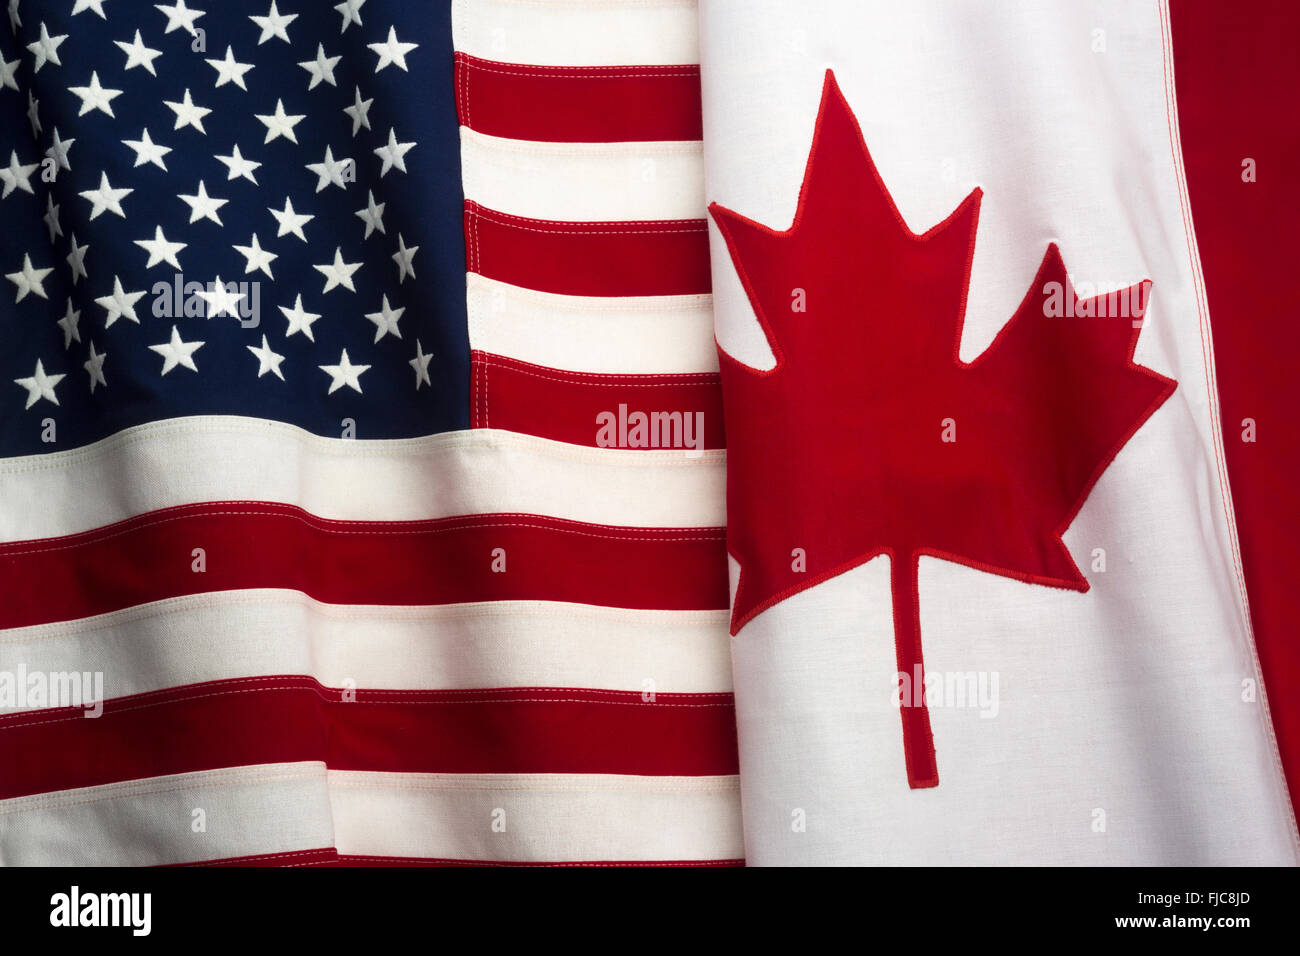 cfbe95e2ac2 FLAGS OF UNITED STATES OF AMERICA AND CANADA MADE OF STITCHED COTTON  BUNTING - Stock Image